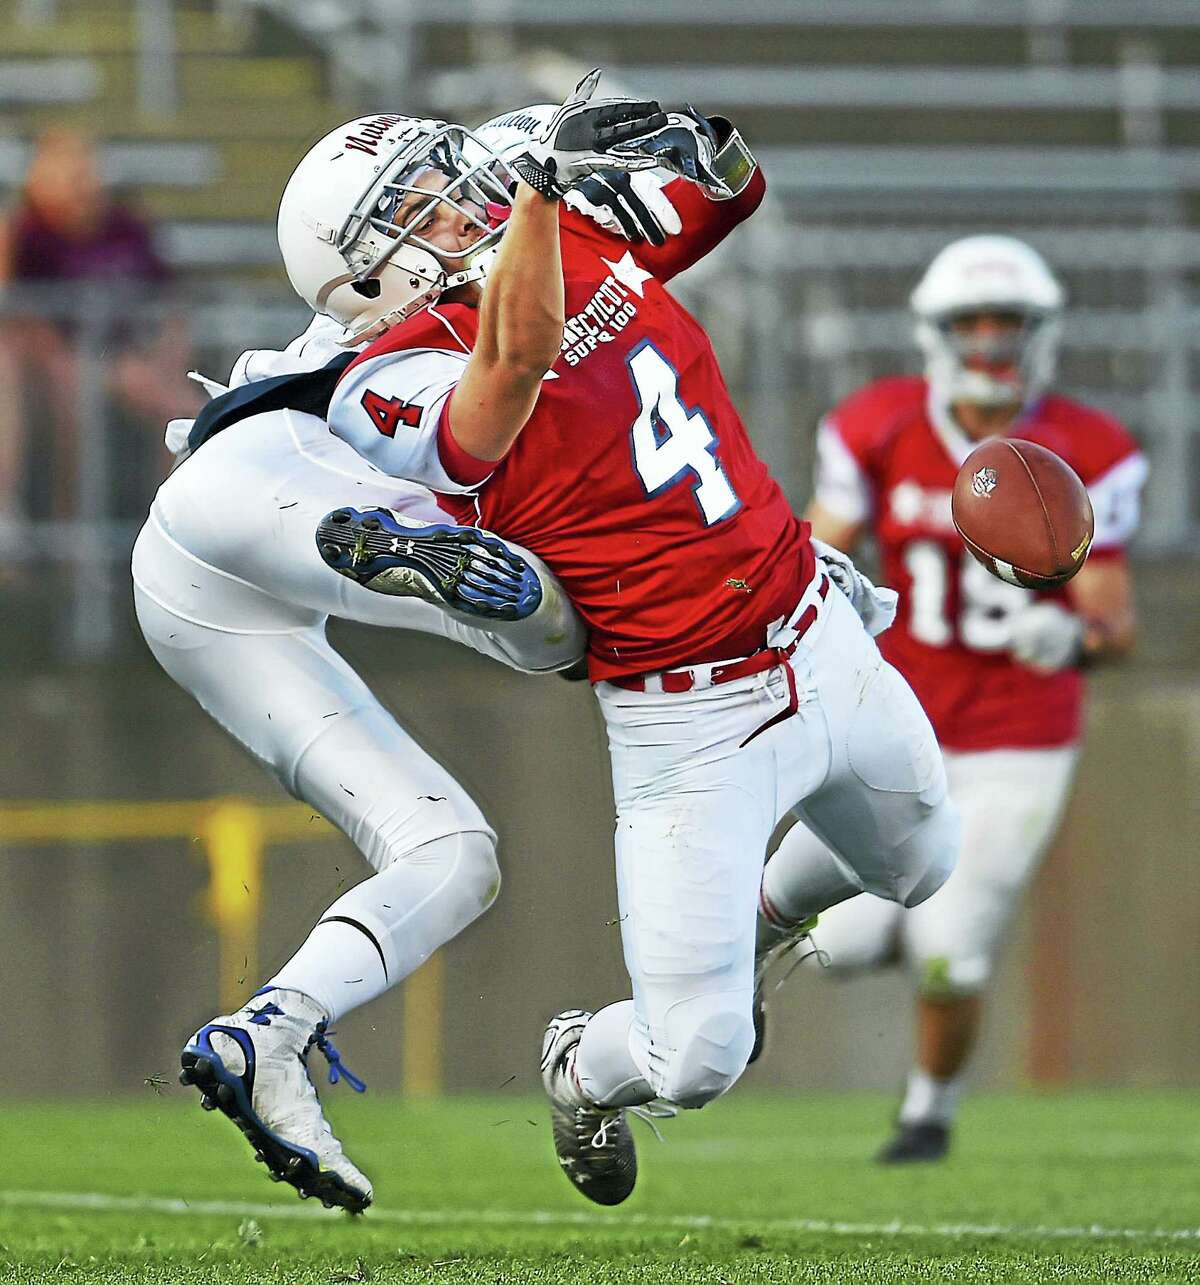 A Constitution defenseman breaks up a pass intended for Nutmeg's Anthony Caramanica - Xavier, Saturday, June 25, 2016, in the Super 100 Classic 2016 High School Senior All-Star Football game sponsored by the Connecticut High School Coaches Association. Team Constitution defeated Team Nutmeg, 33-9.